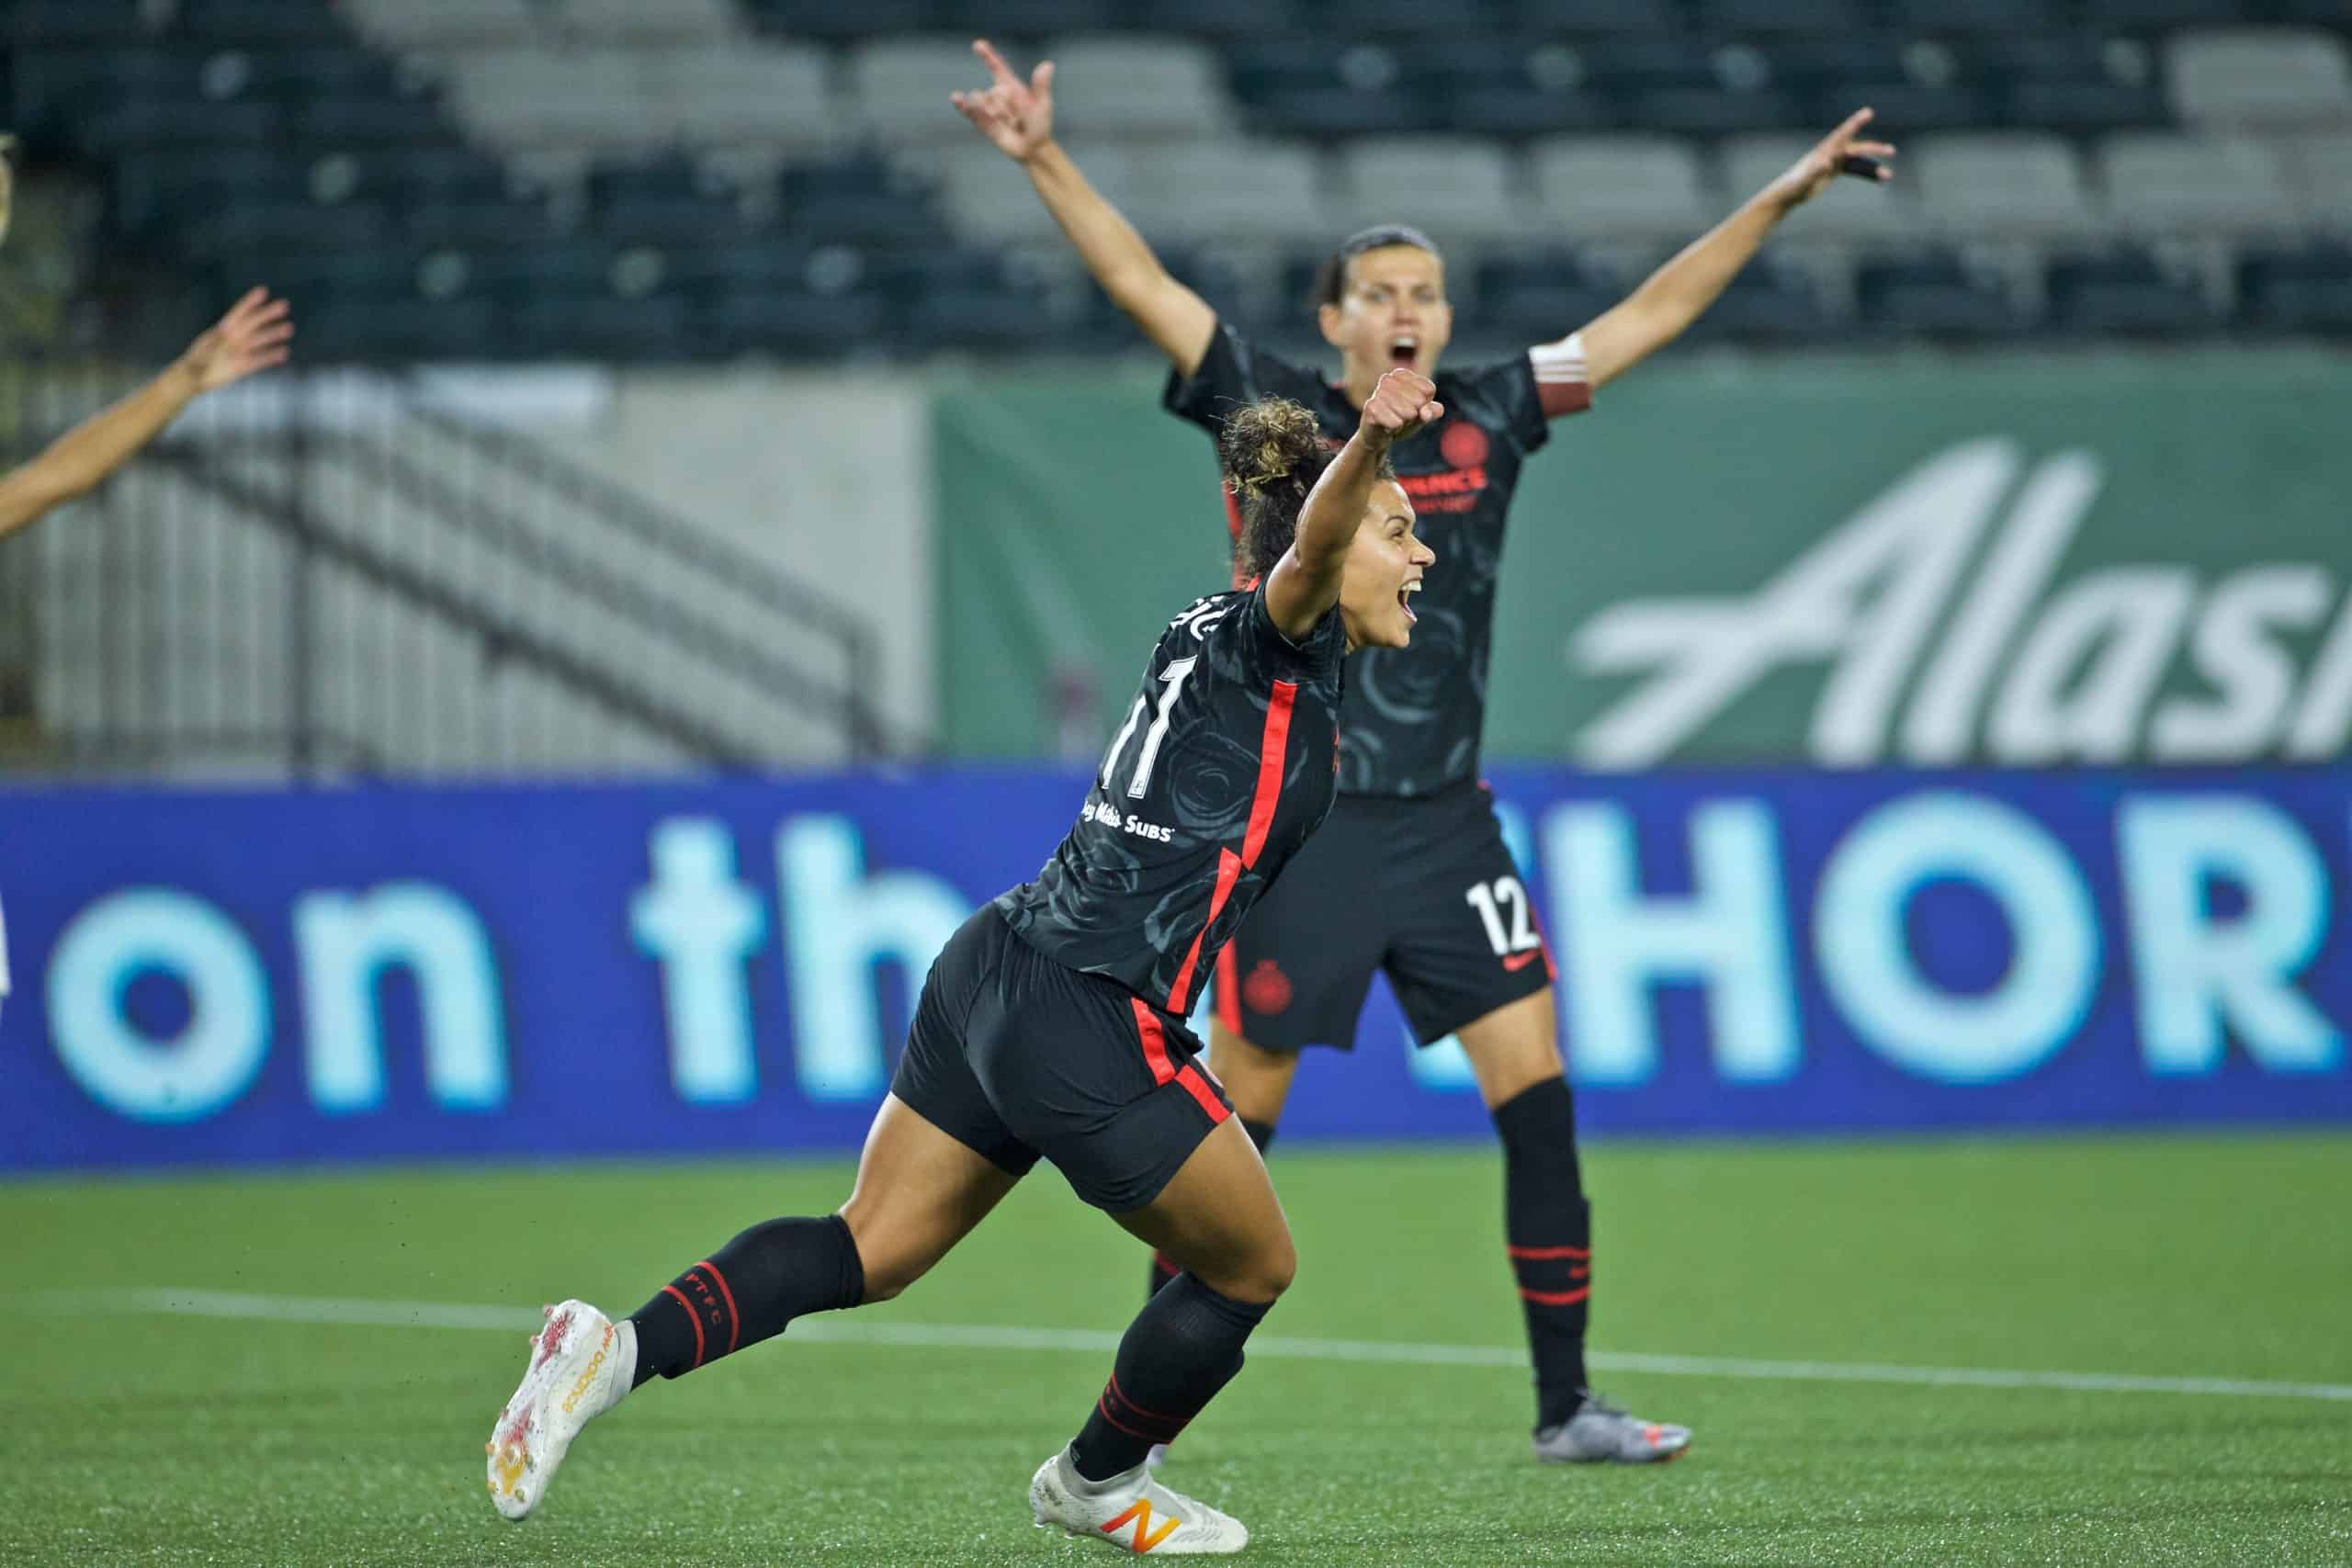 Raquel Rodríguez celebrates a goal with the Portland Thorns on September 30, 2020.